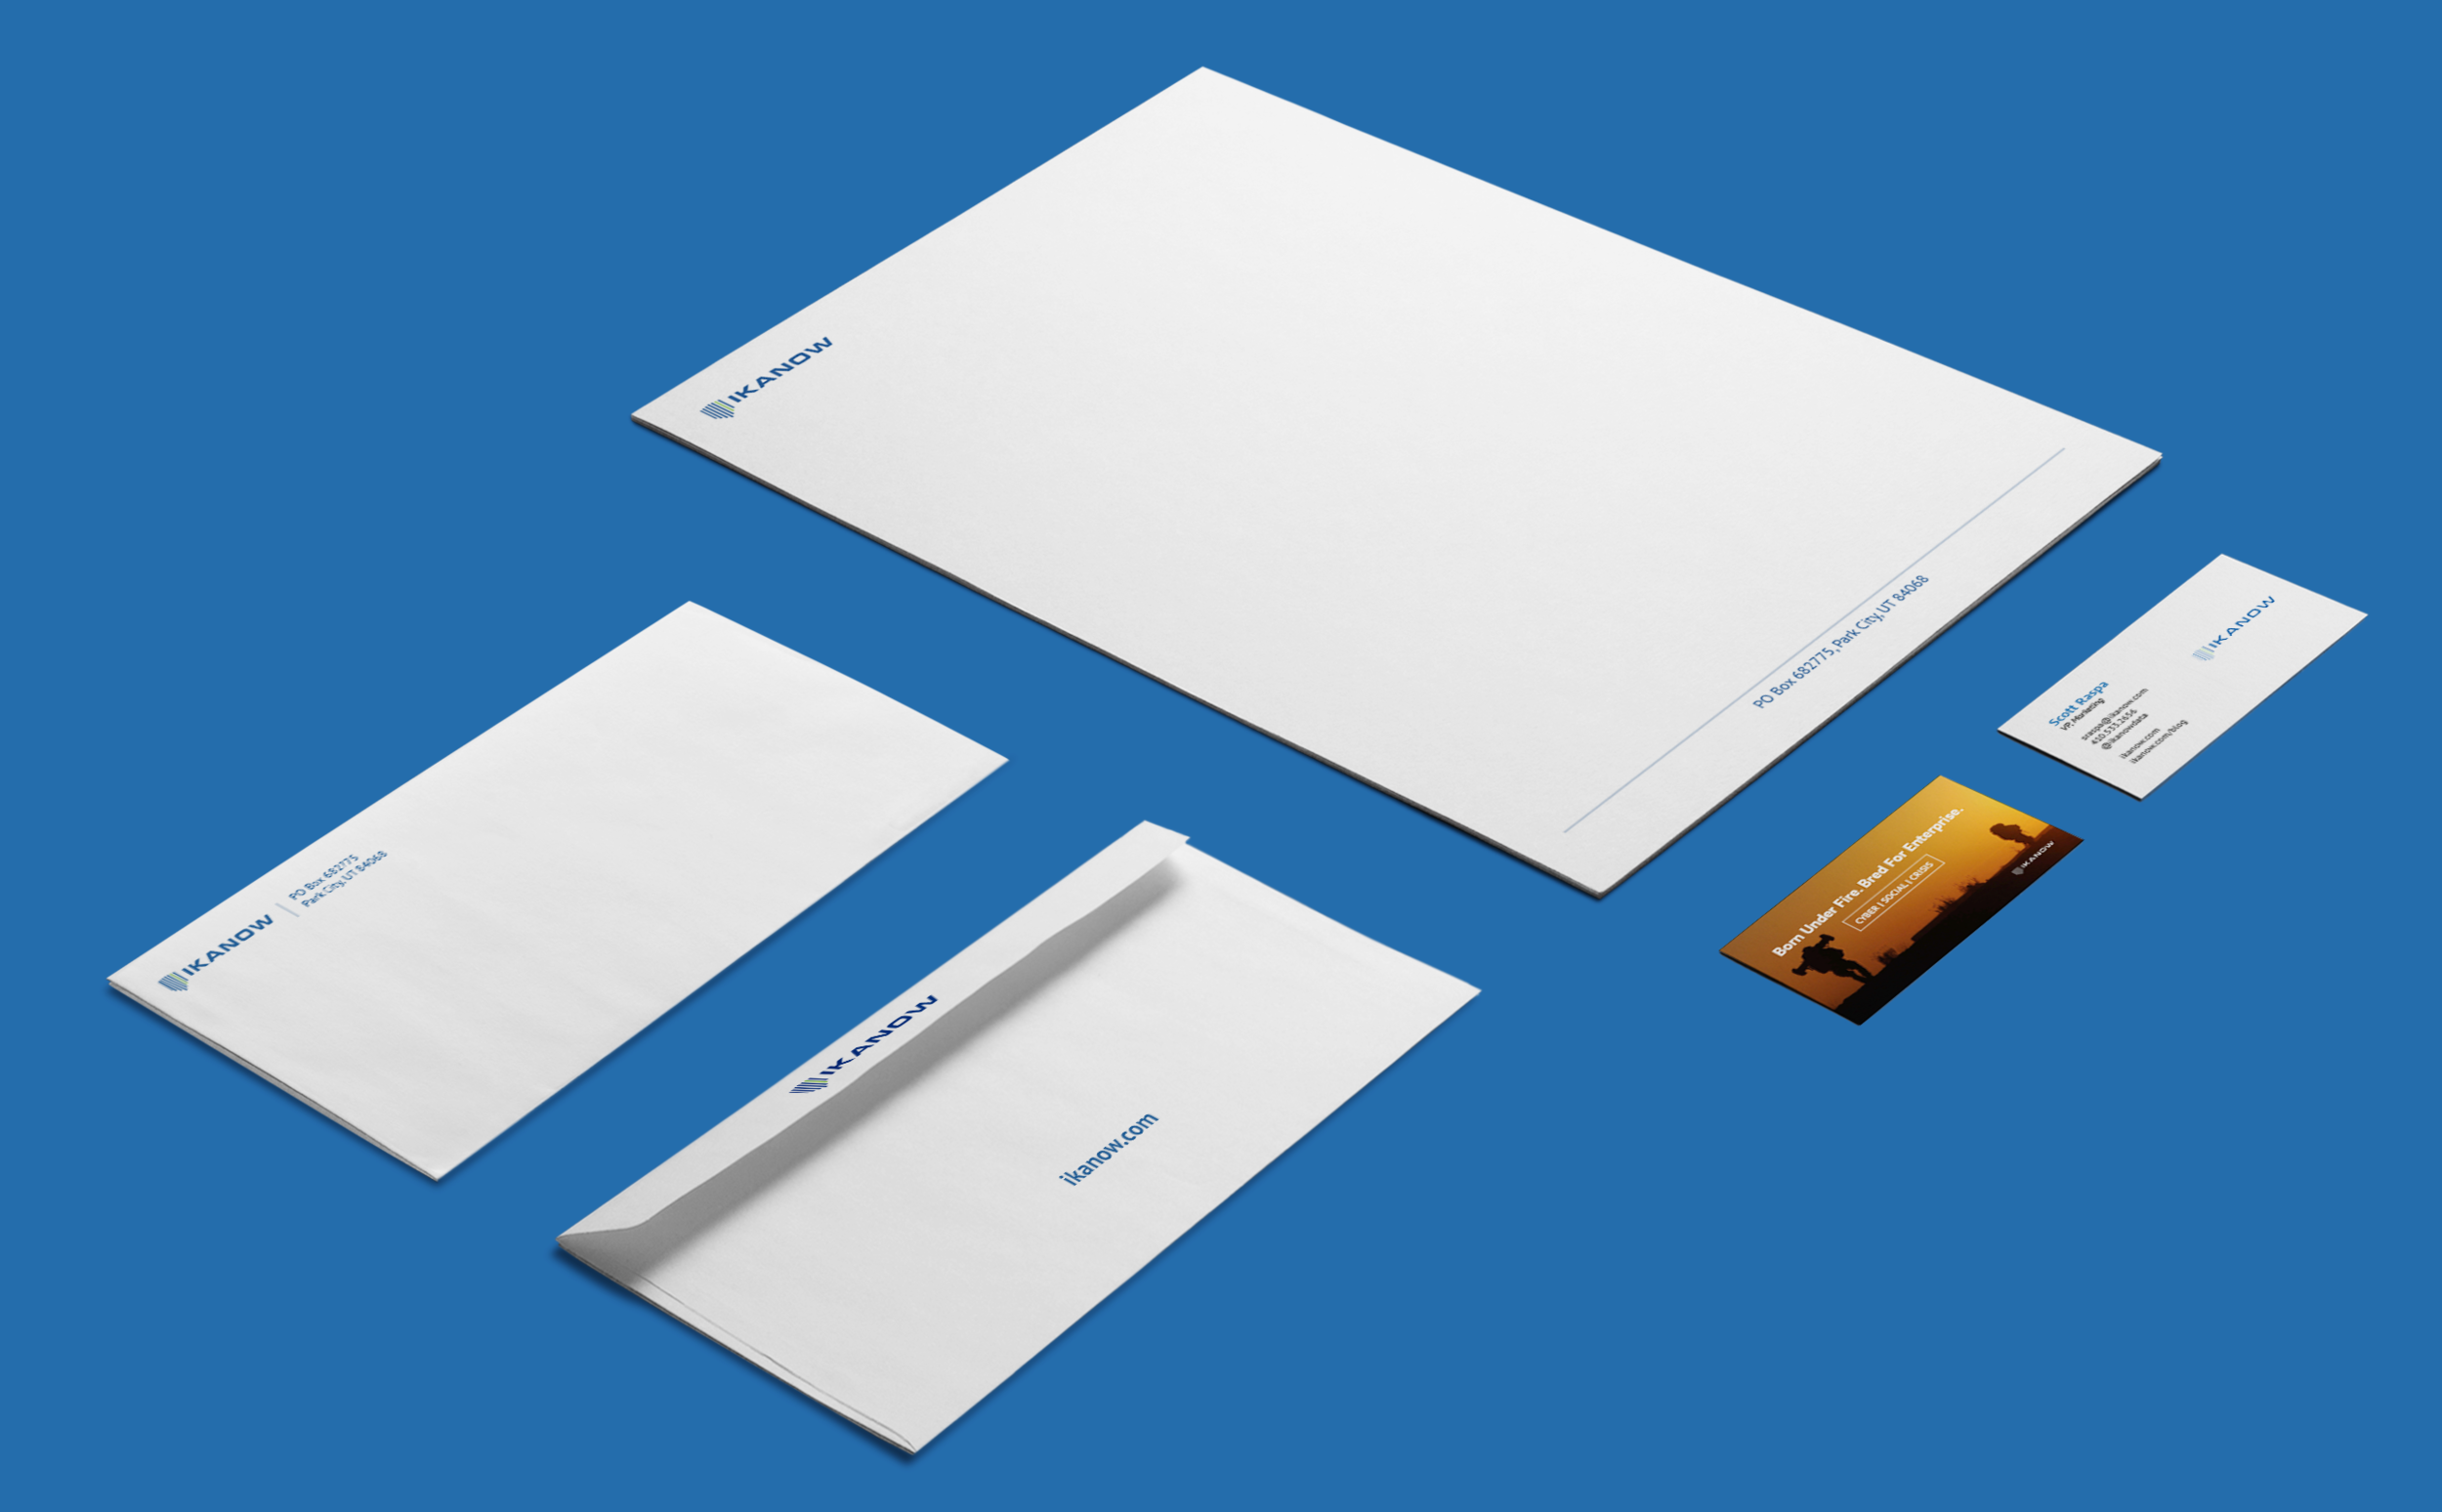 IKANOW letterhead, envelope and business card.